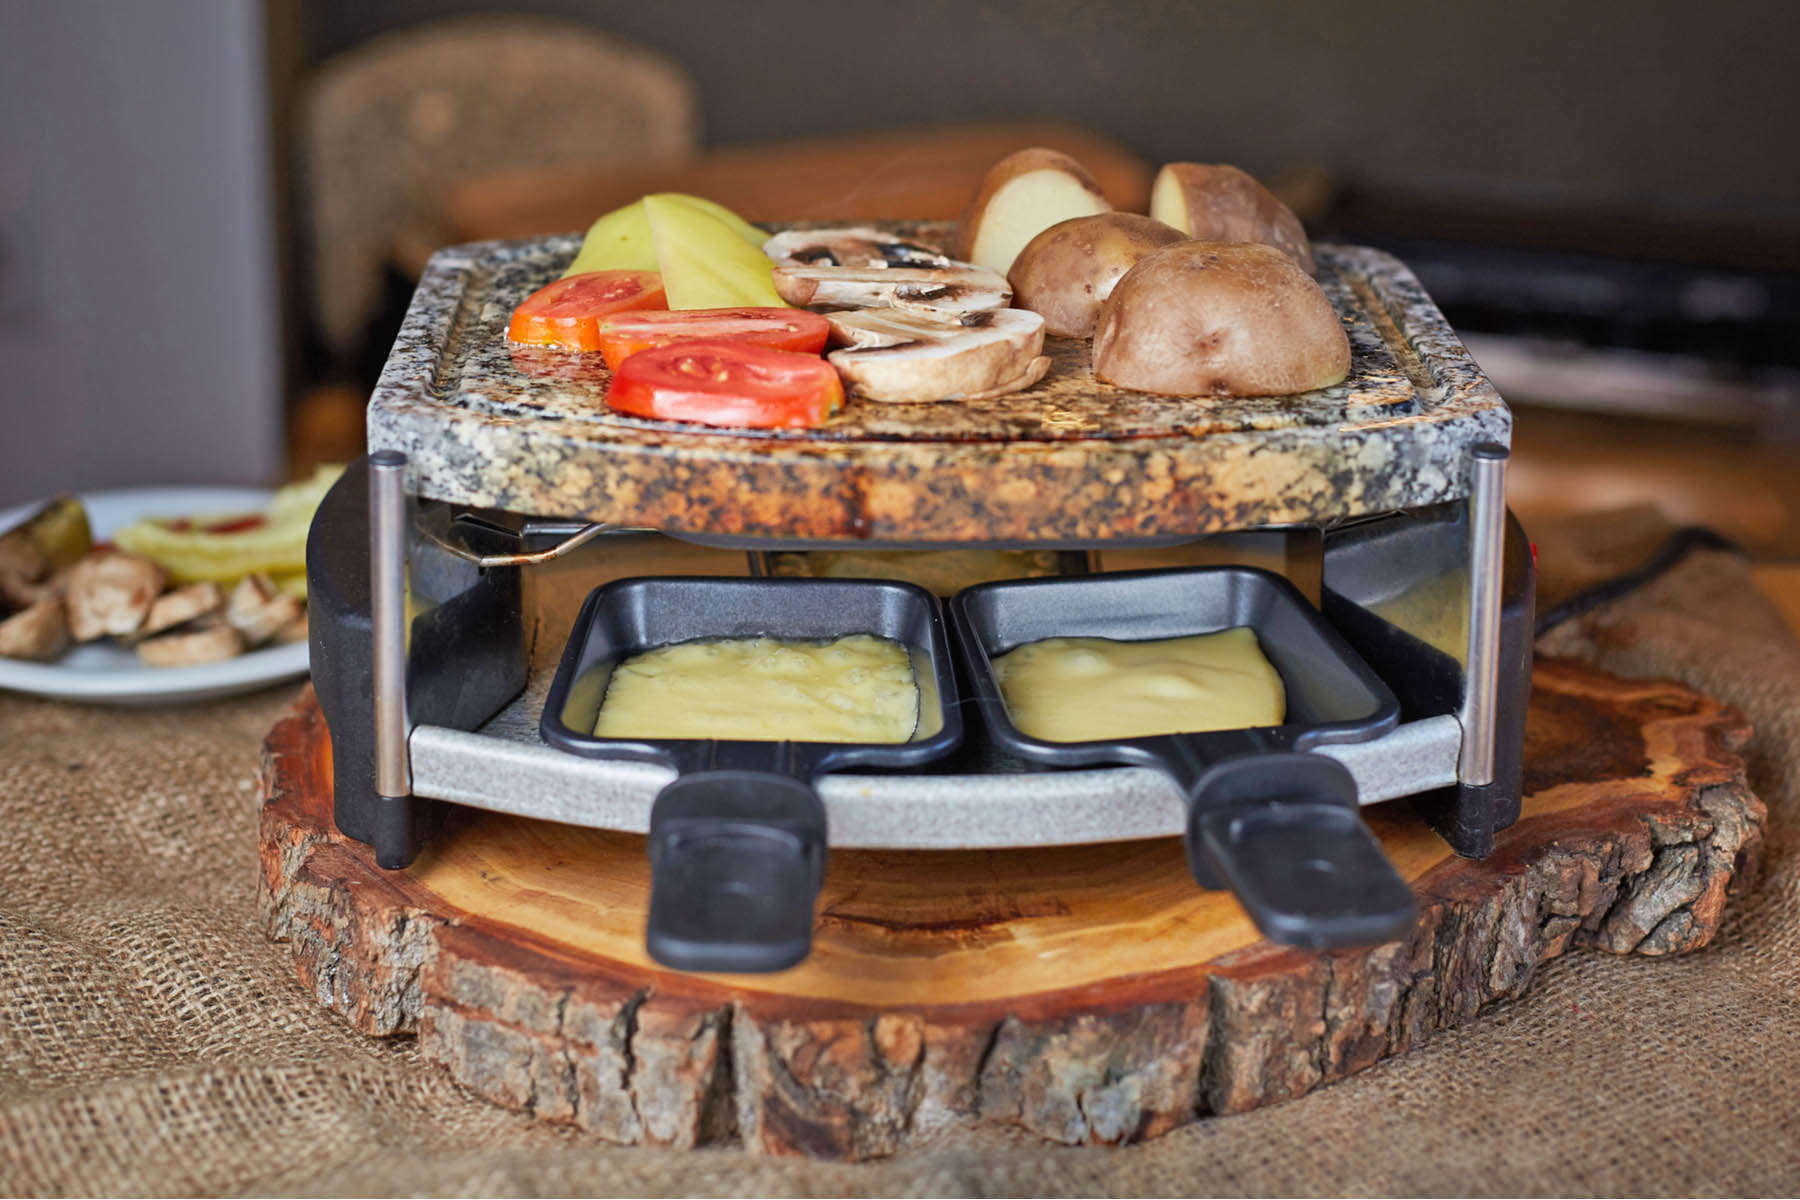 Top 10 Swiss foods – with recipes: Raclette